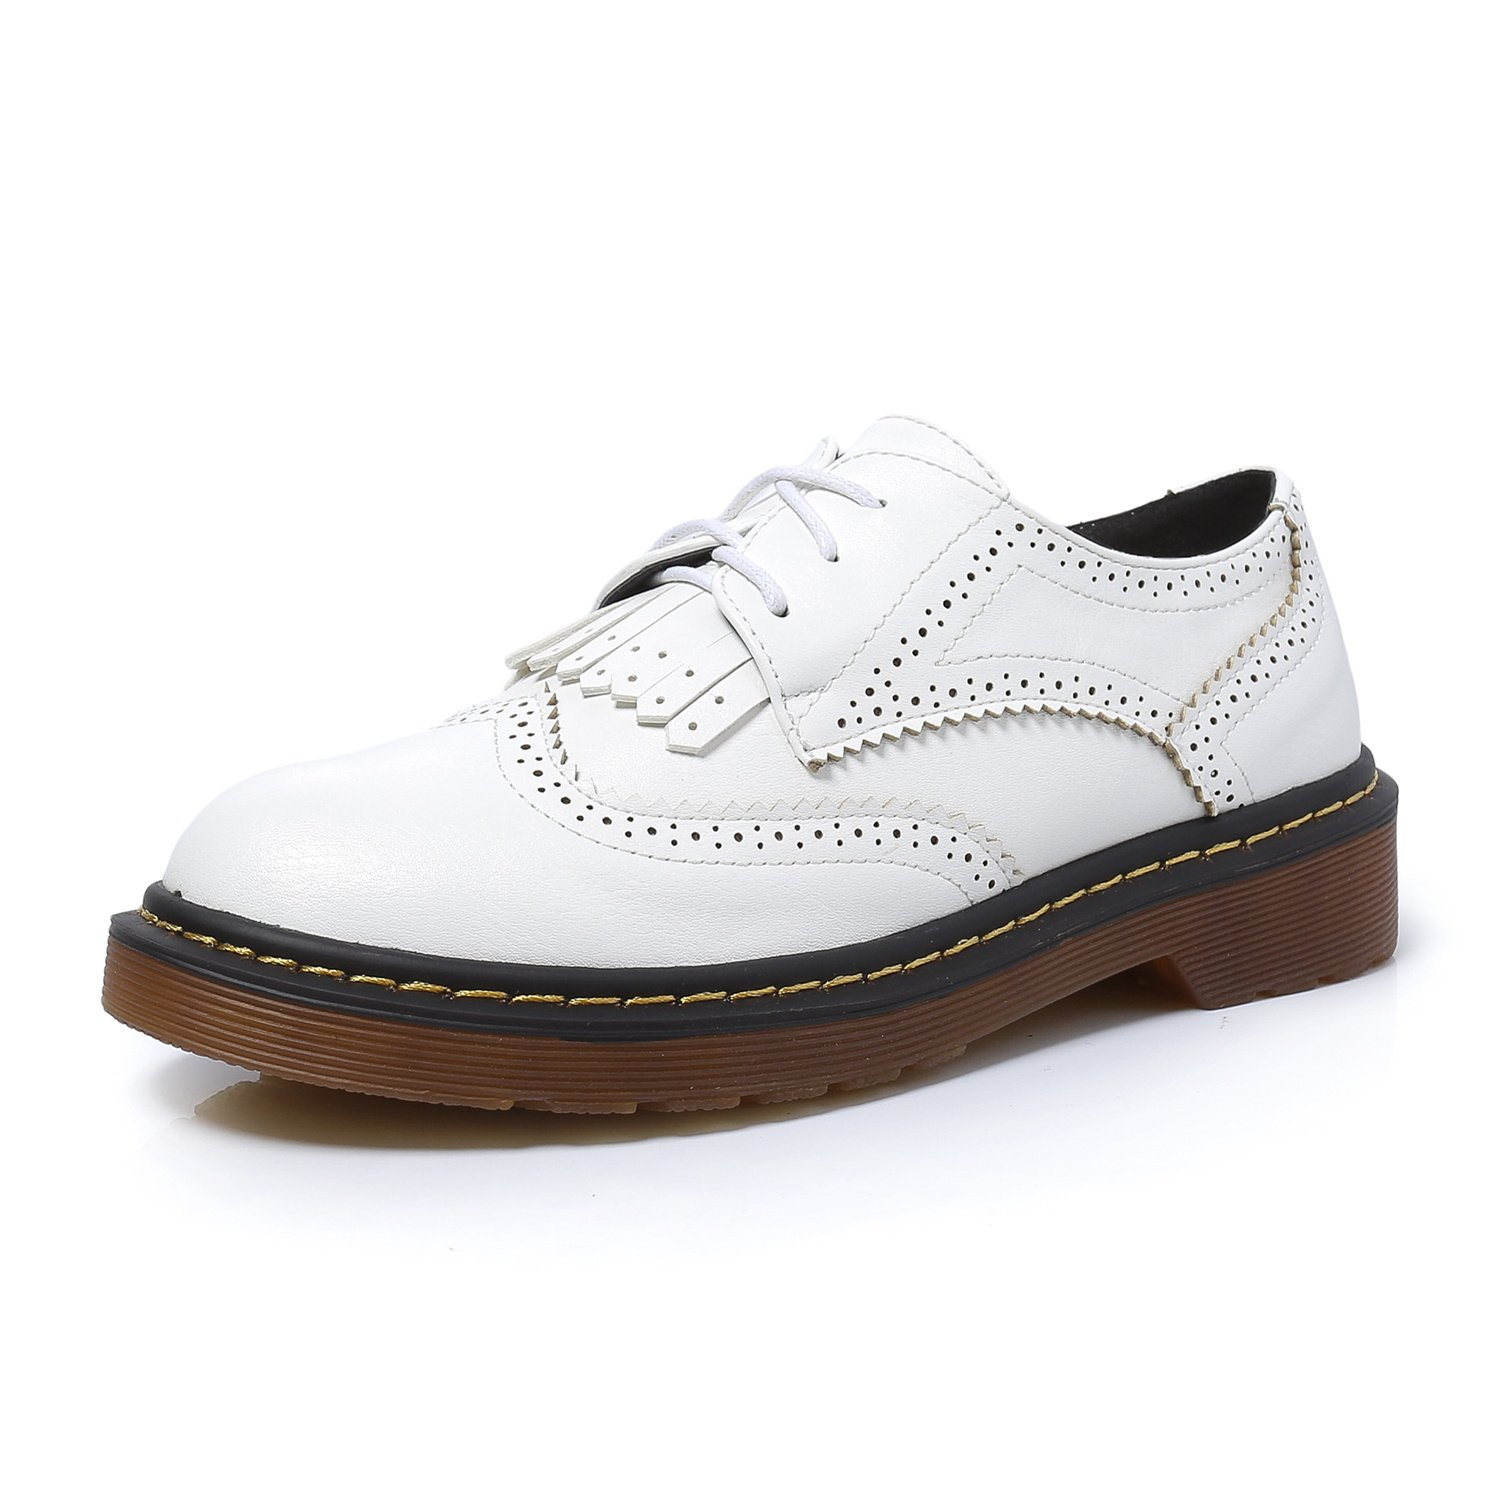 Smilun Girl¡¯s Derby Classic Lace-up Shoes Leather Flats Leather Office Business Dress Shoes for Girl White Size 6 B(M) US